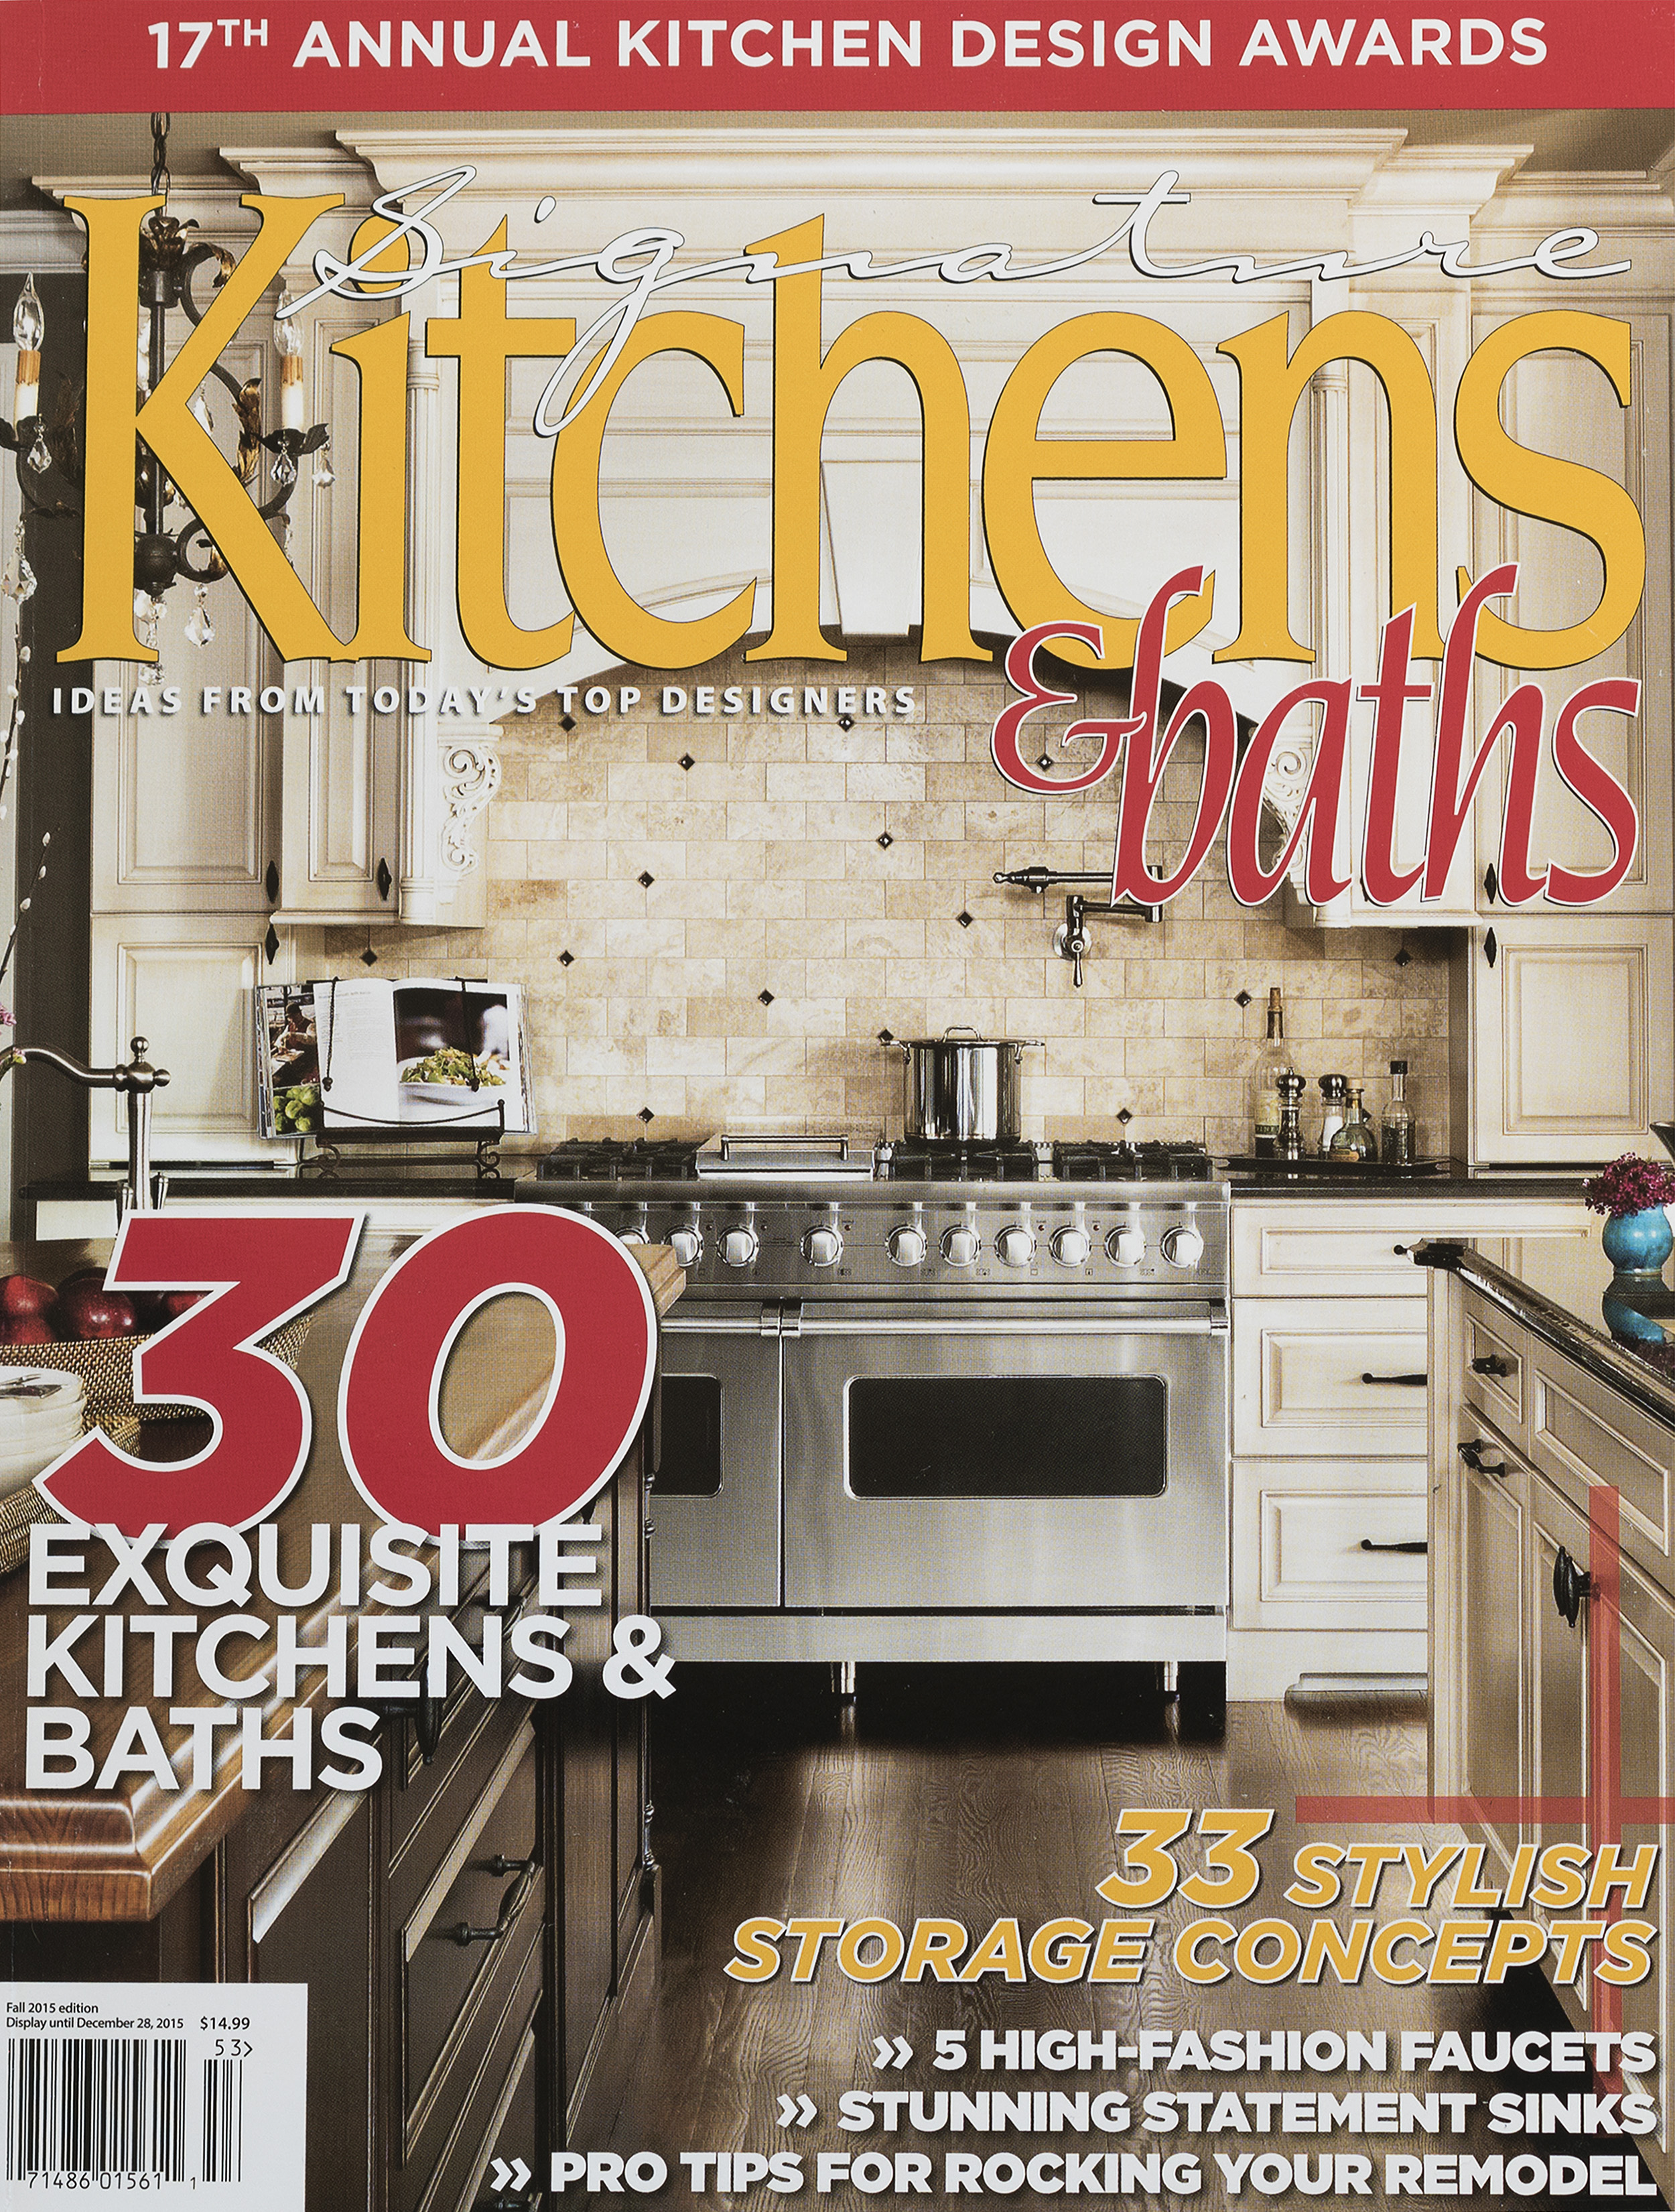 Kitchen Bath Cover.jpg